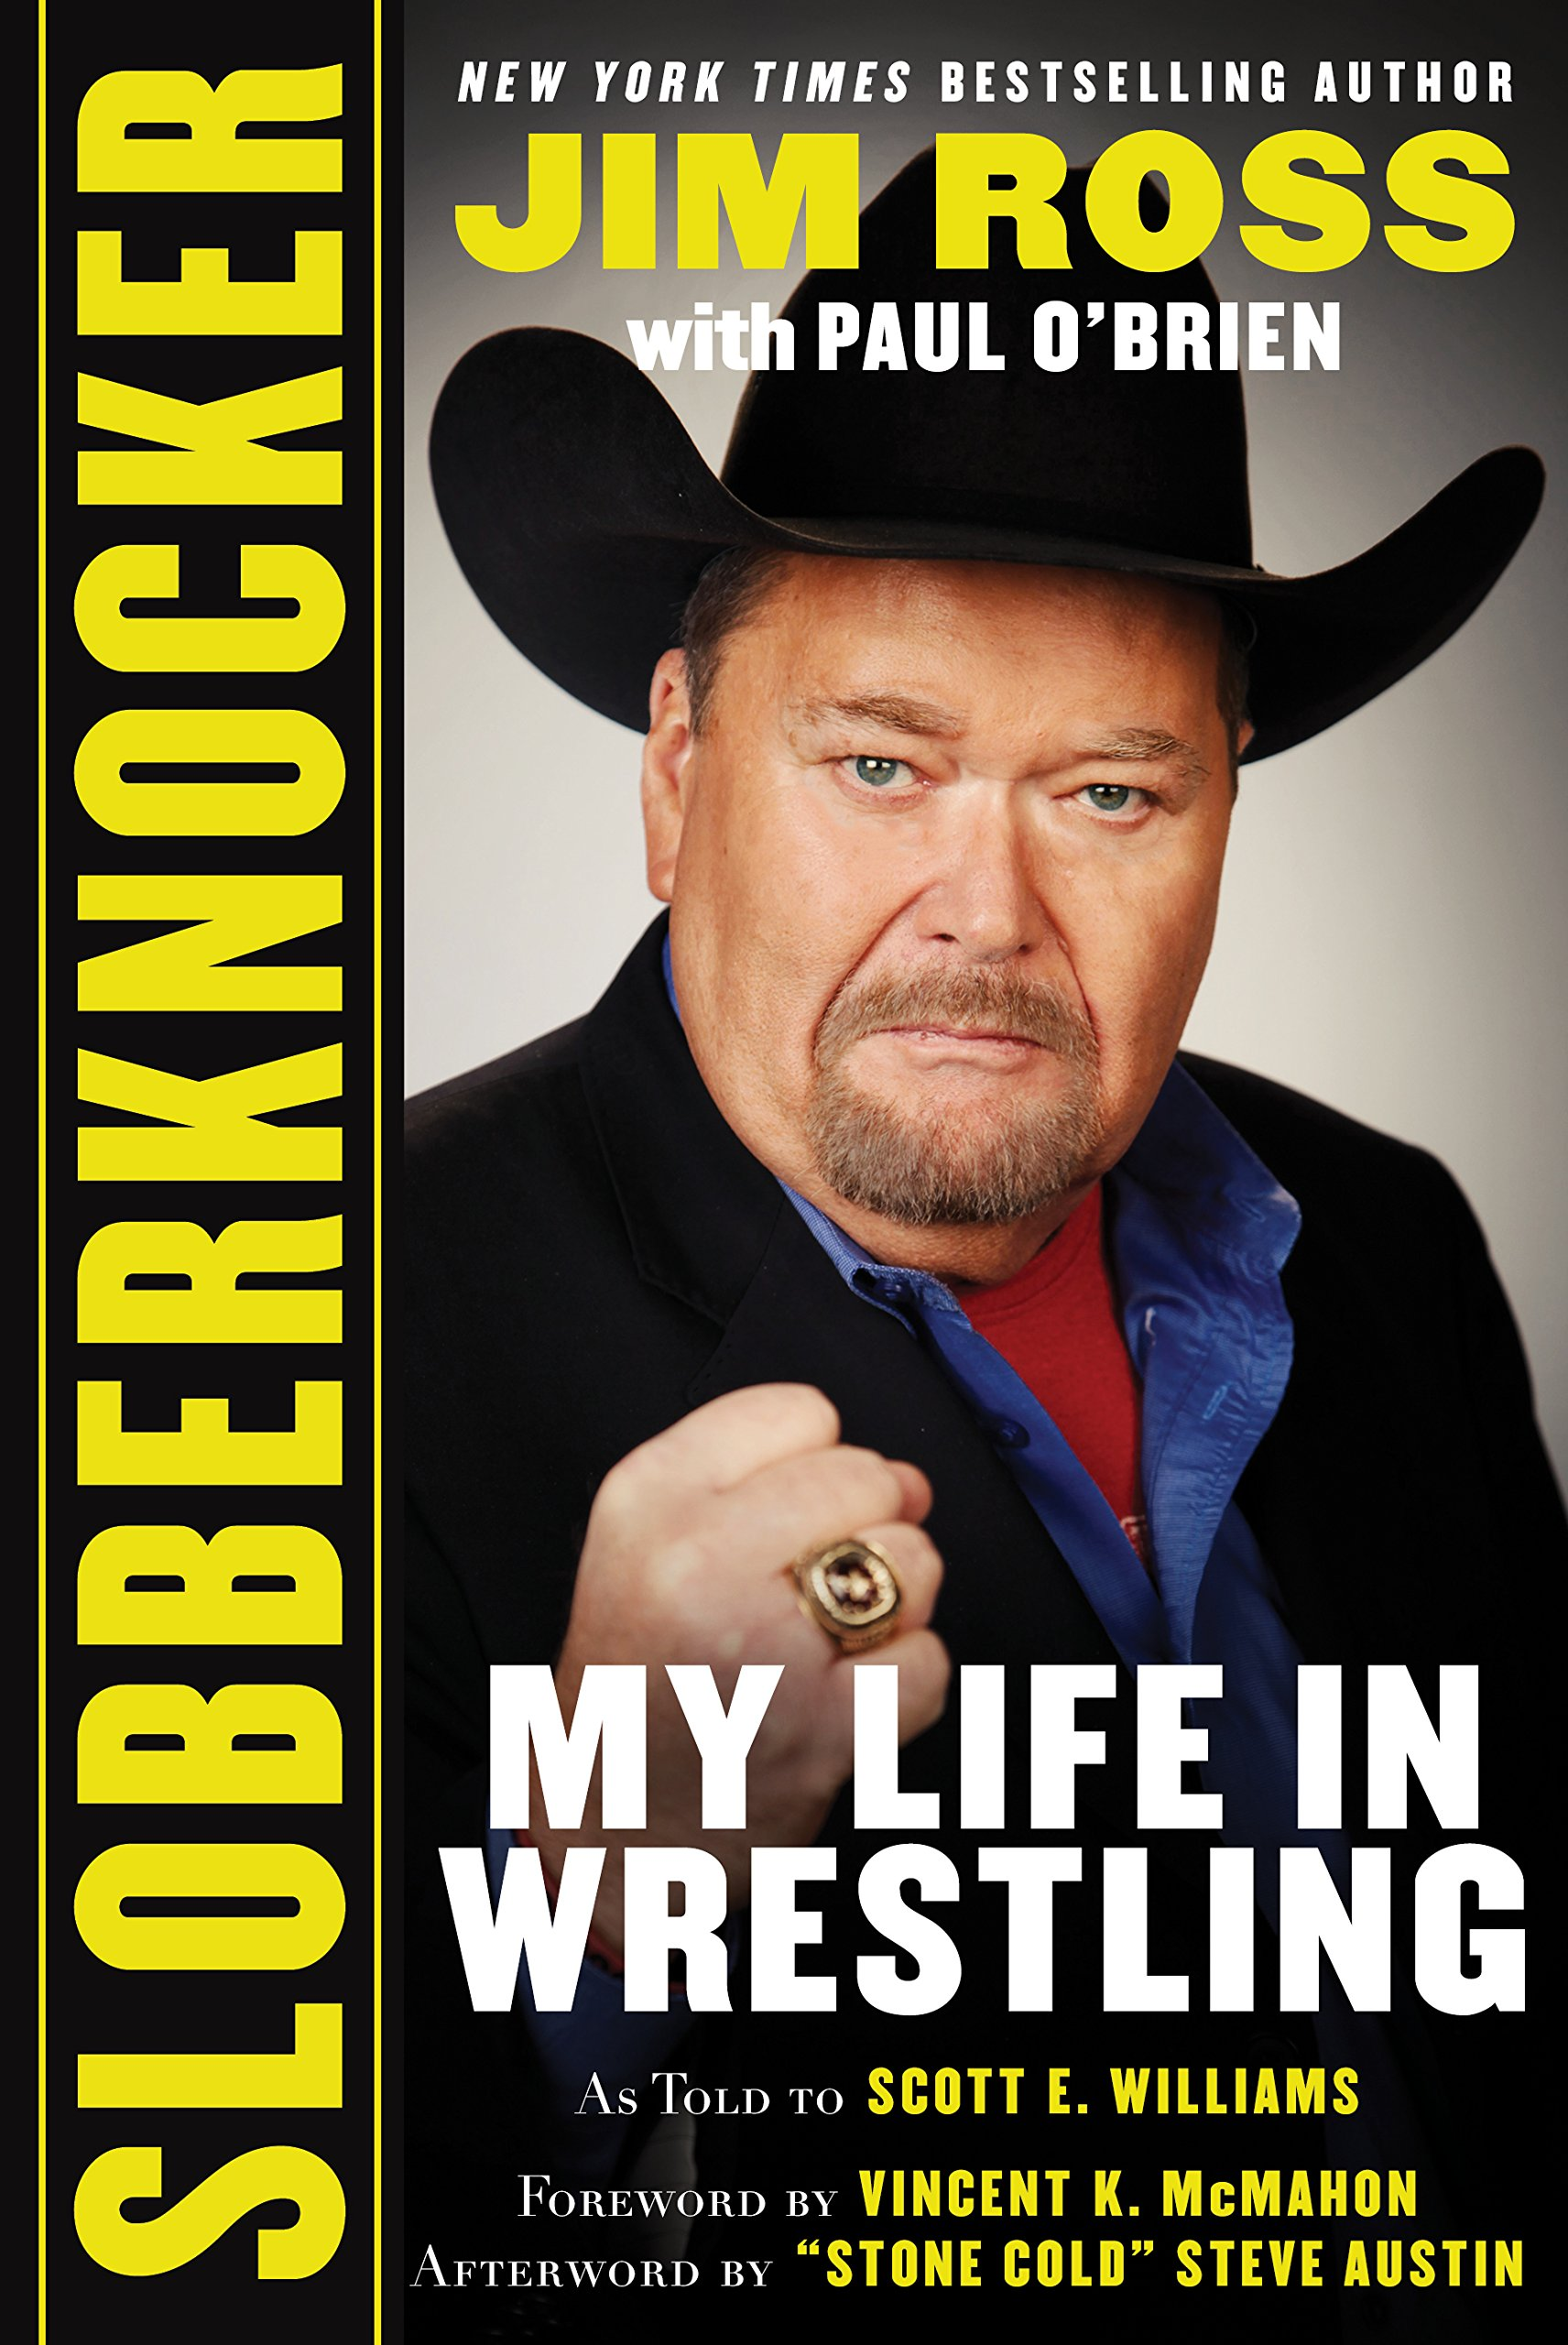 Jim Ross Book Review